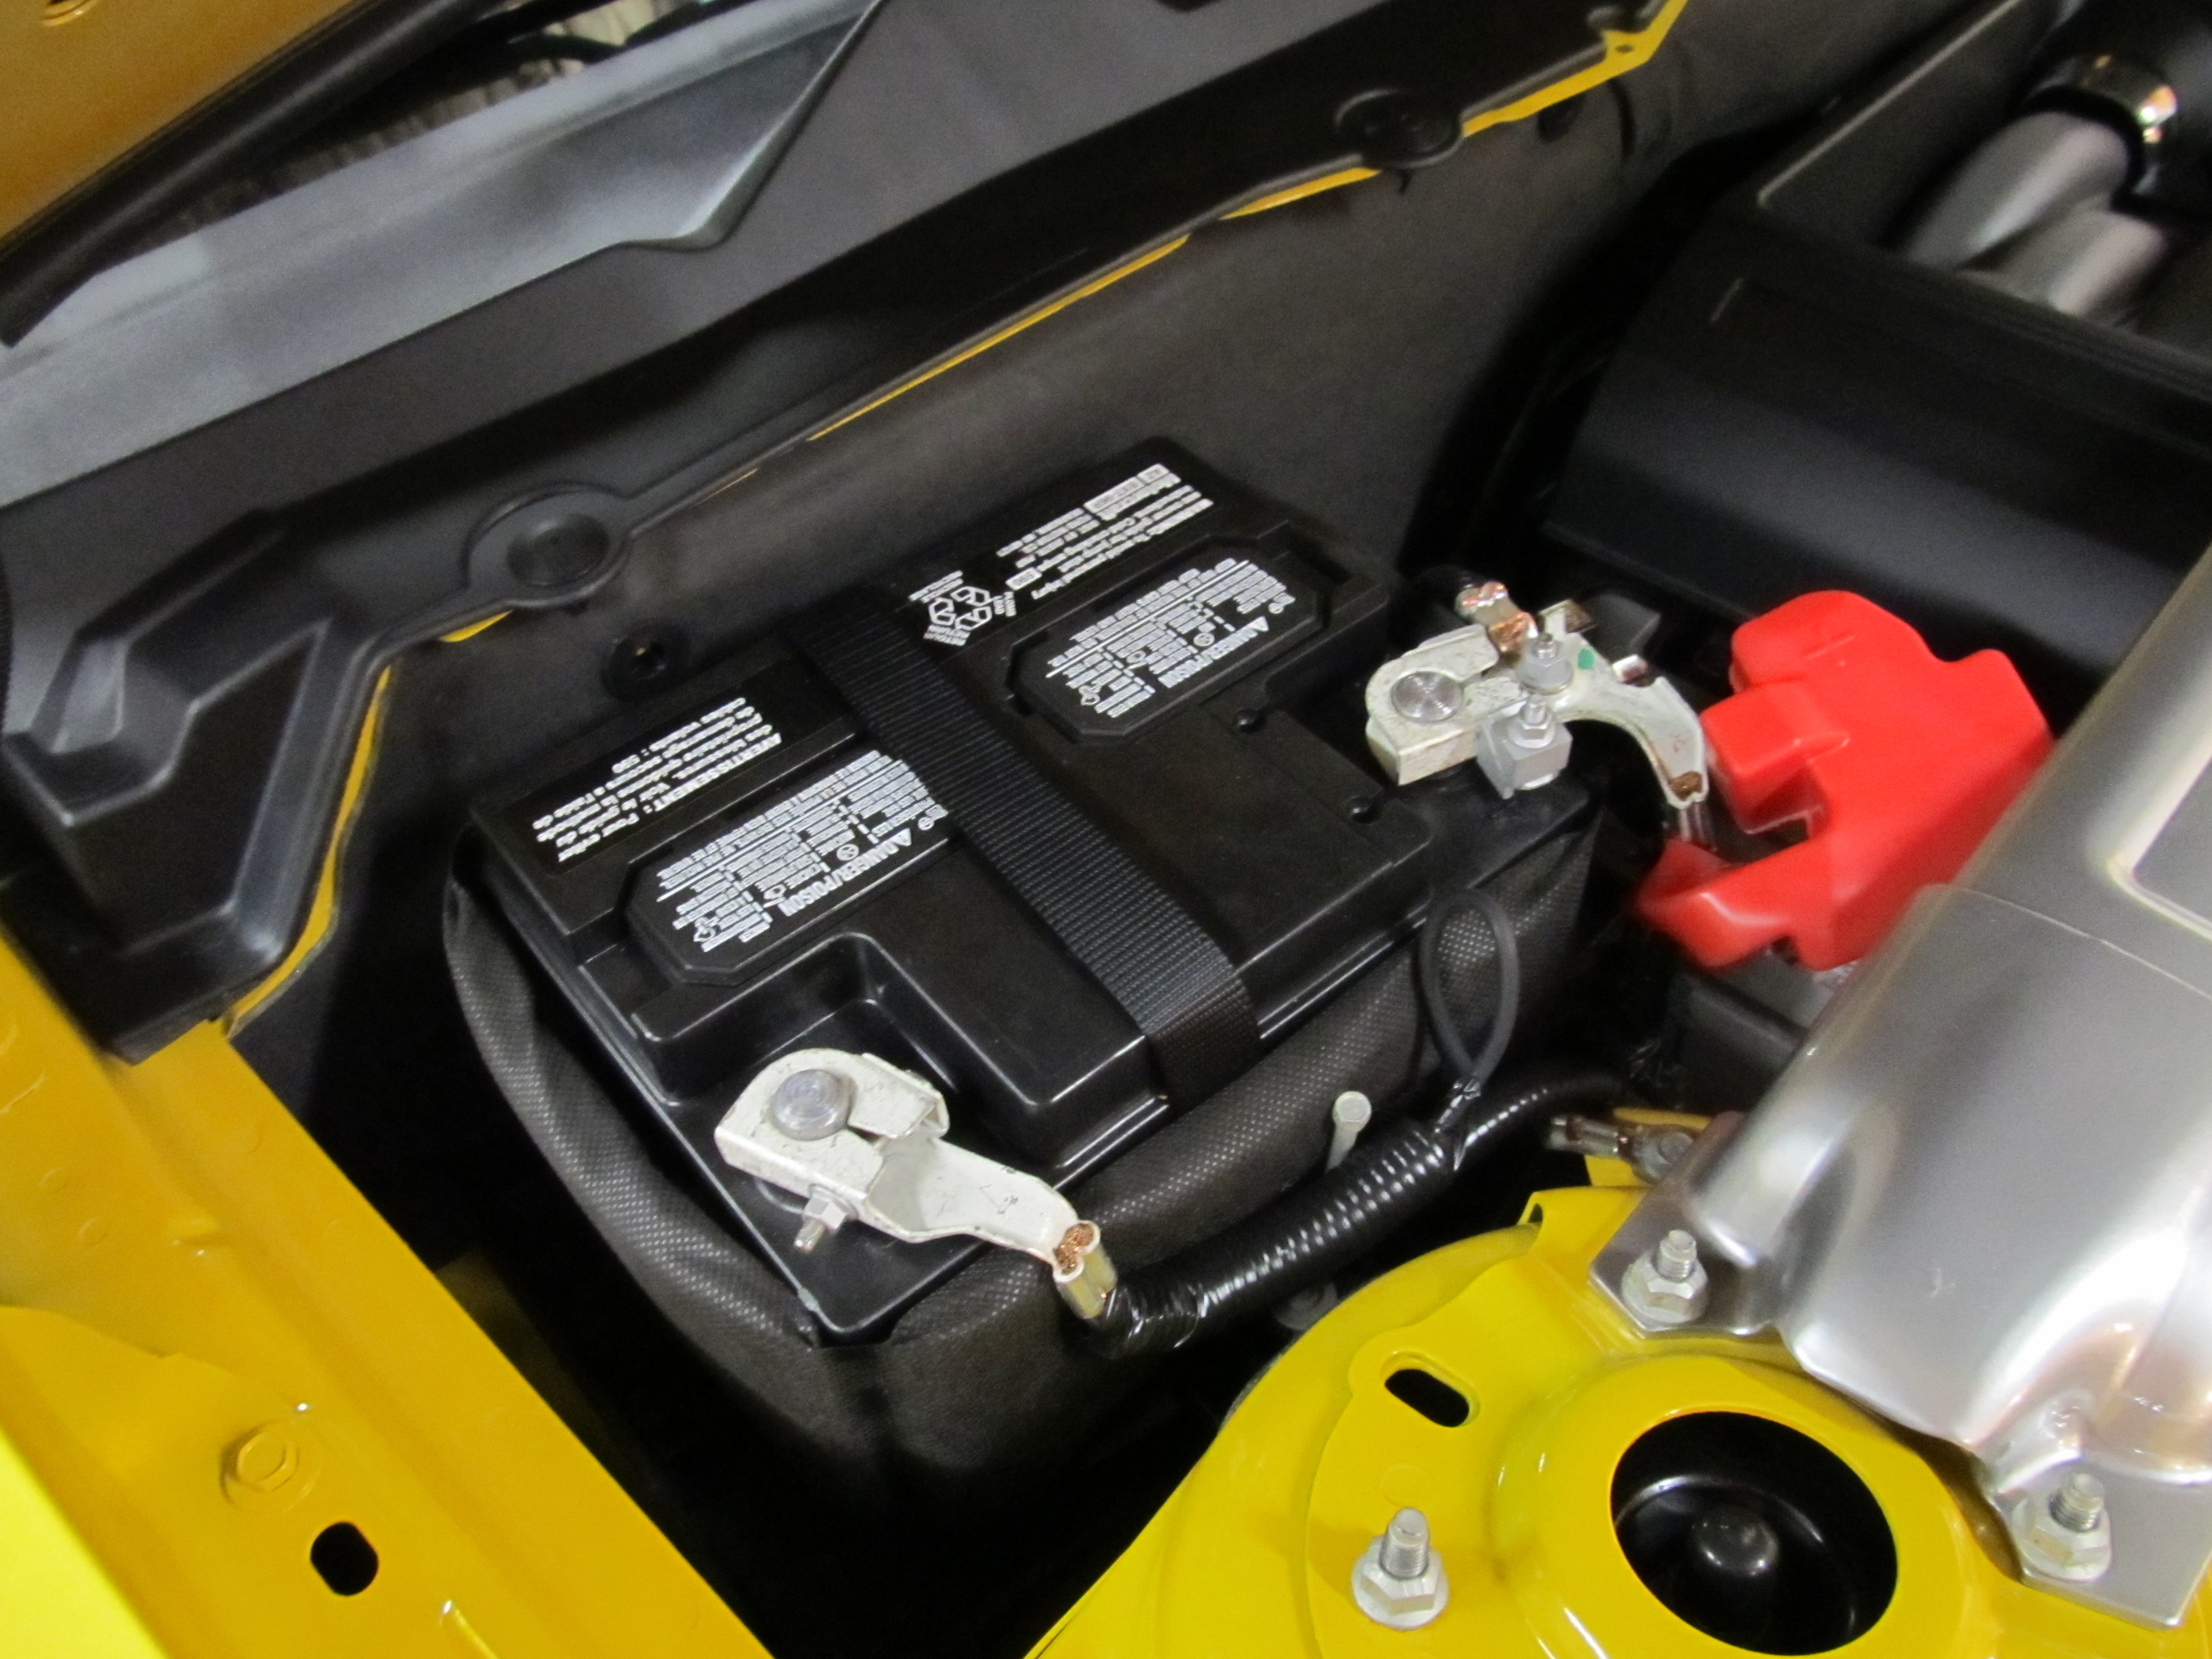 Disassembling A 2011 Mustang Gt For A Stereo Install